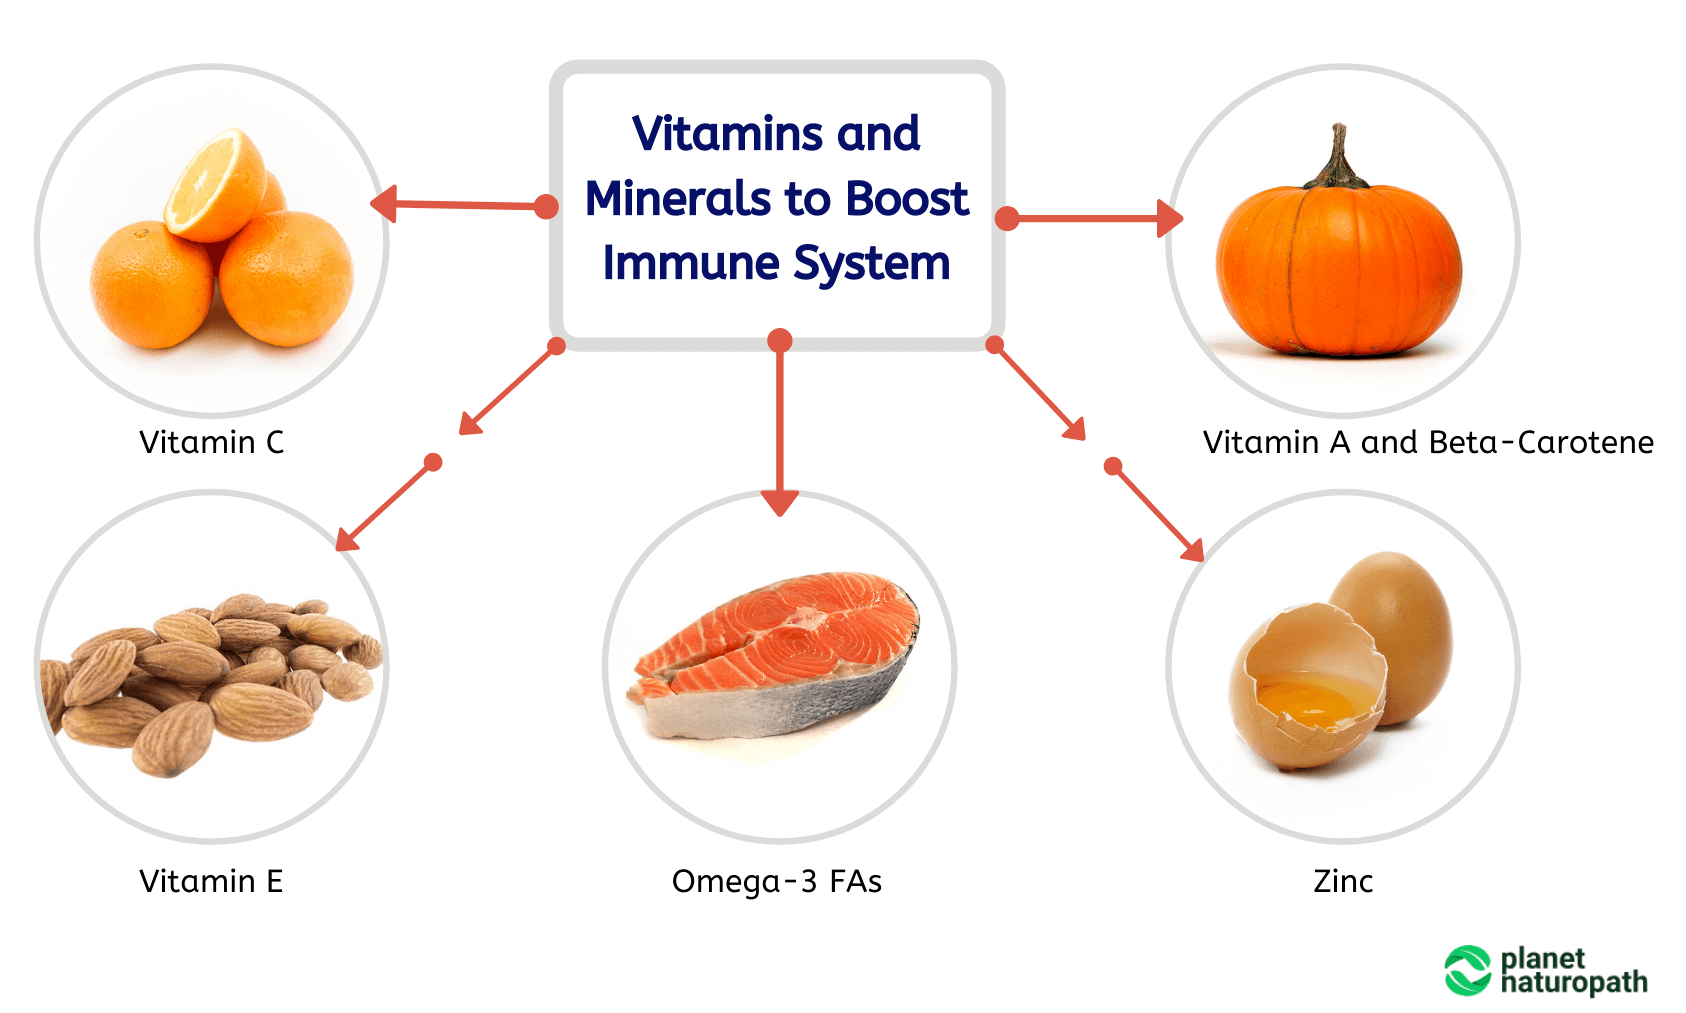 Vitamins-and-Minerals-to-Boost-Immune-System